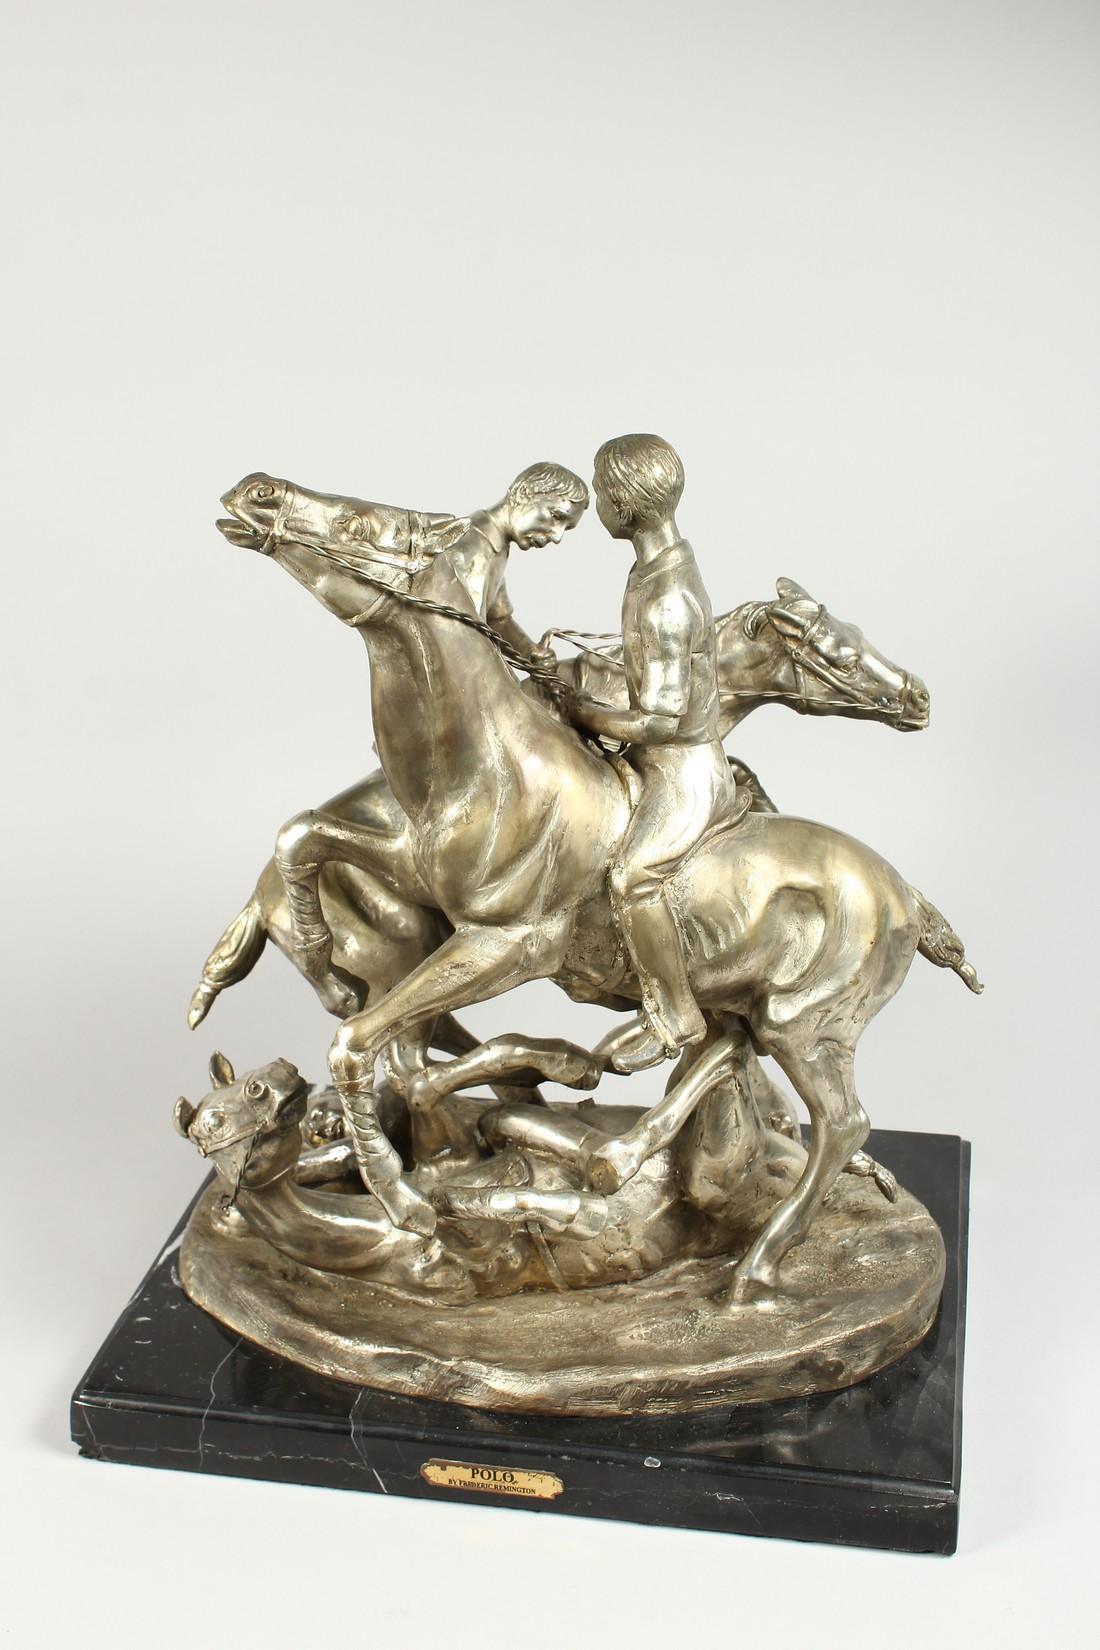 AFTER F. REMMINGTON A SILVER BRONZE GROUP OF TWO RIDERS ON HORSEBACK, a horn and rider on the floor. - Image 3 of 16